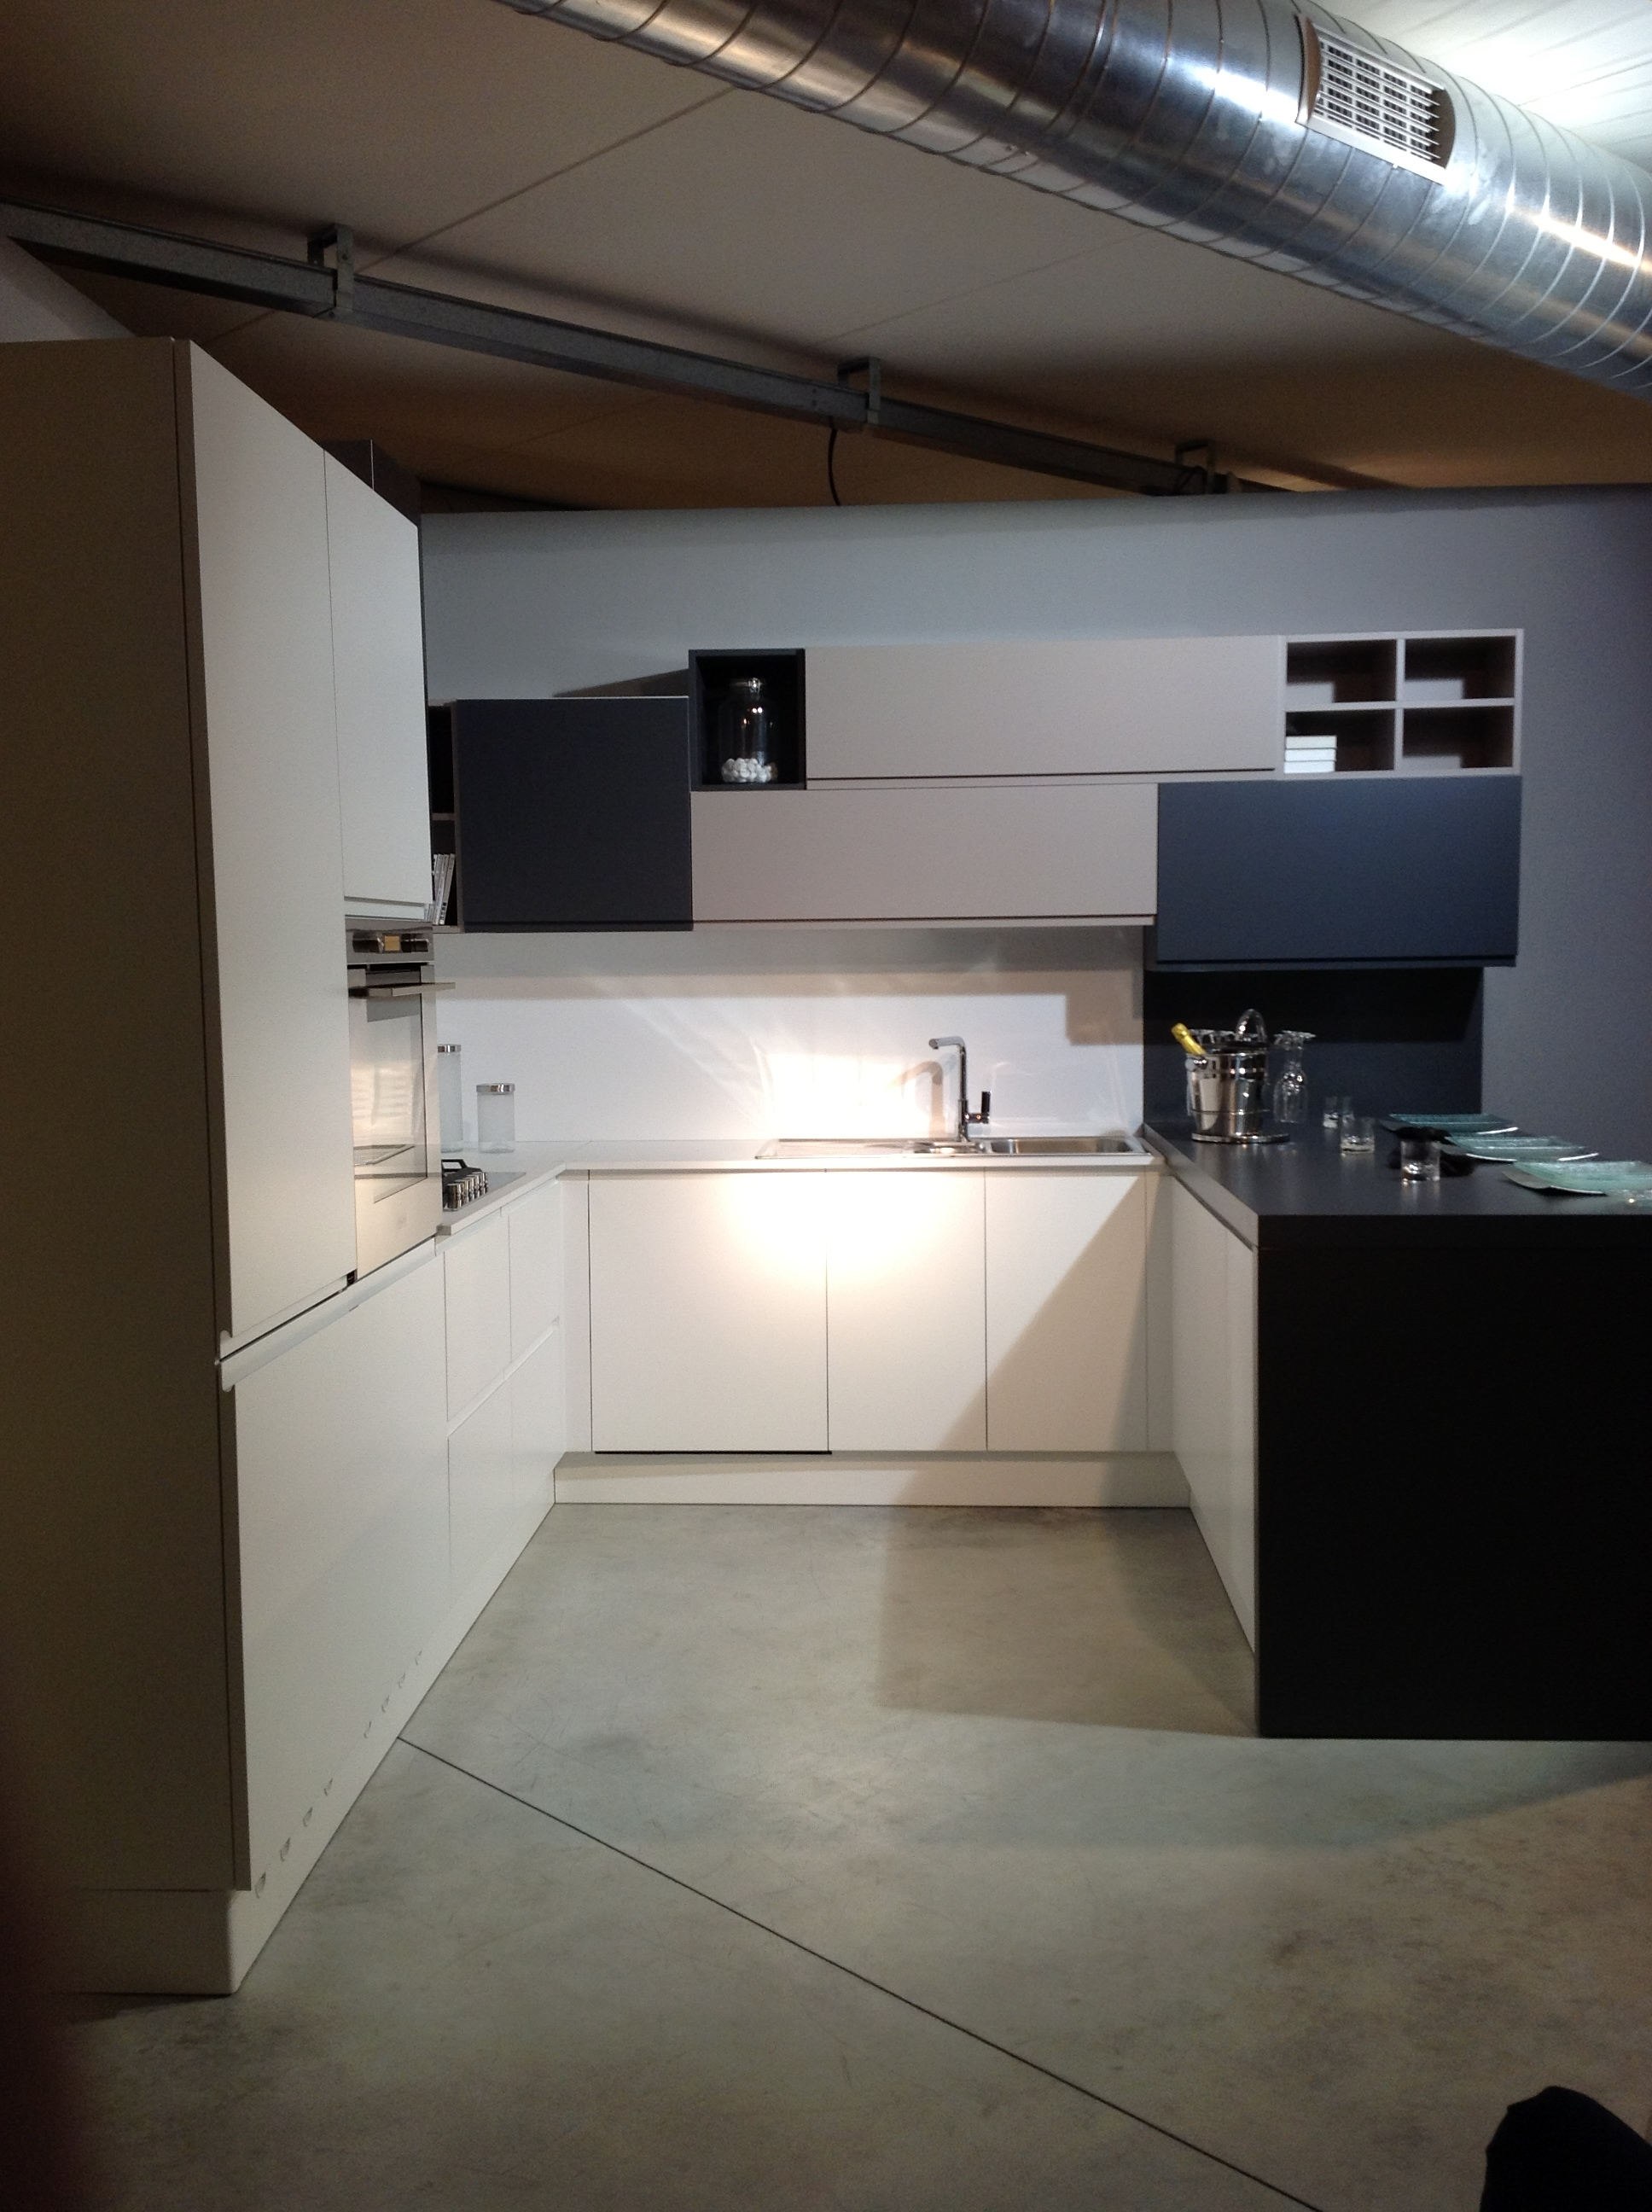 Awesome Cucine On Line Photos - bakeroffroad.us - bakeroffroad.us